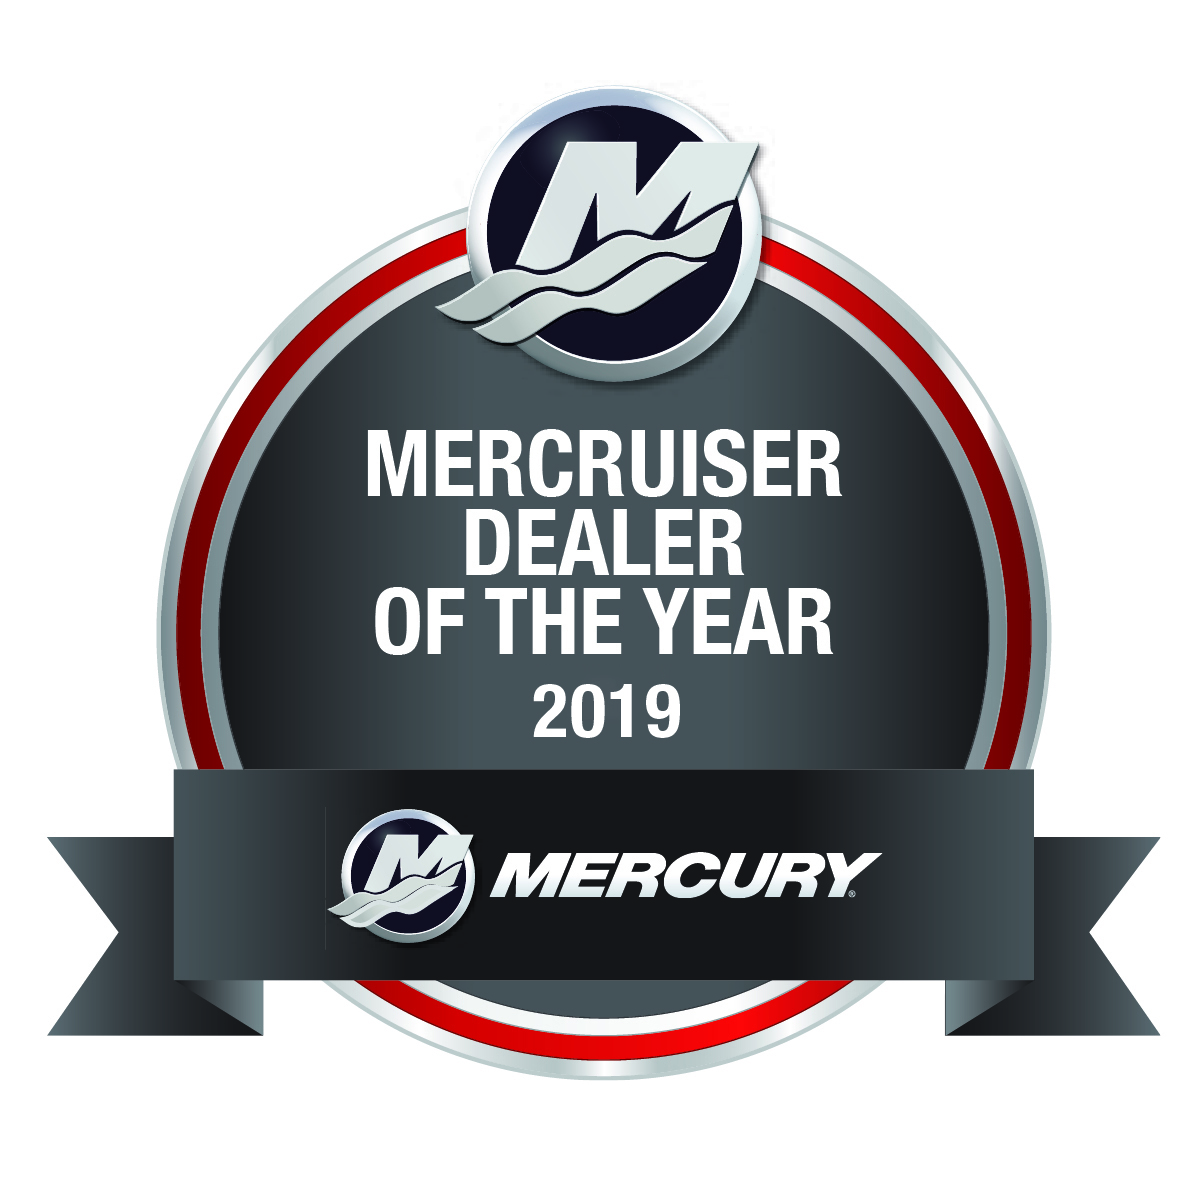 Mercruiser Dealer of the Year Hitech Marine 2019